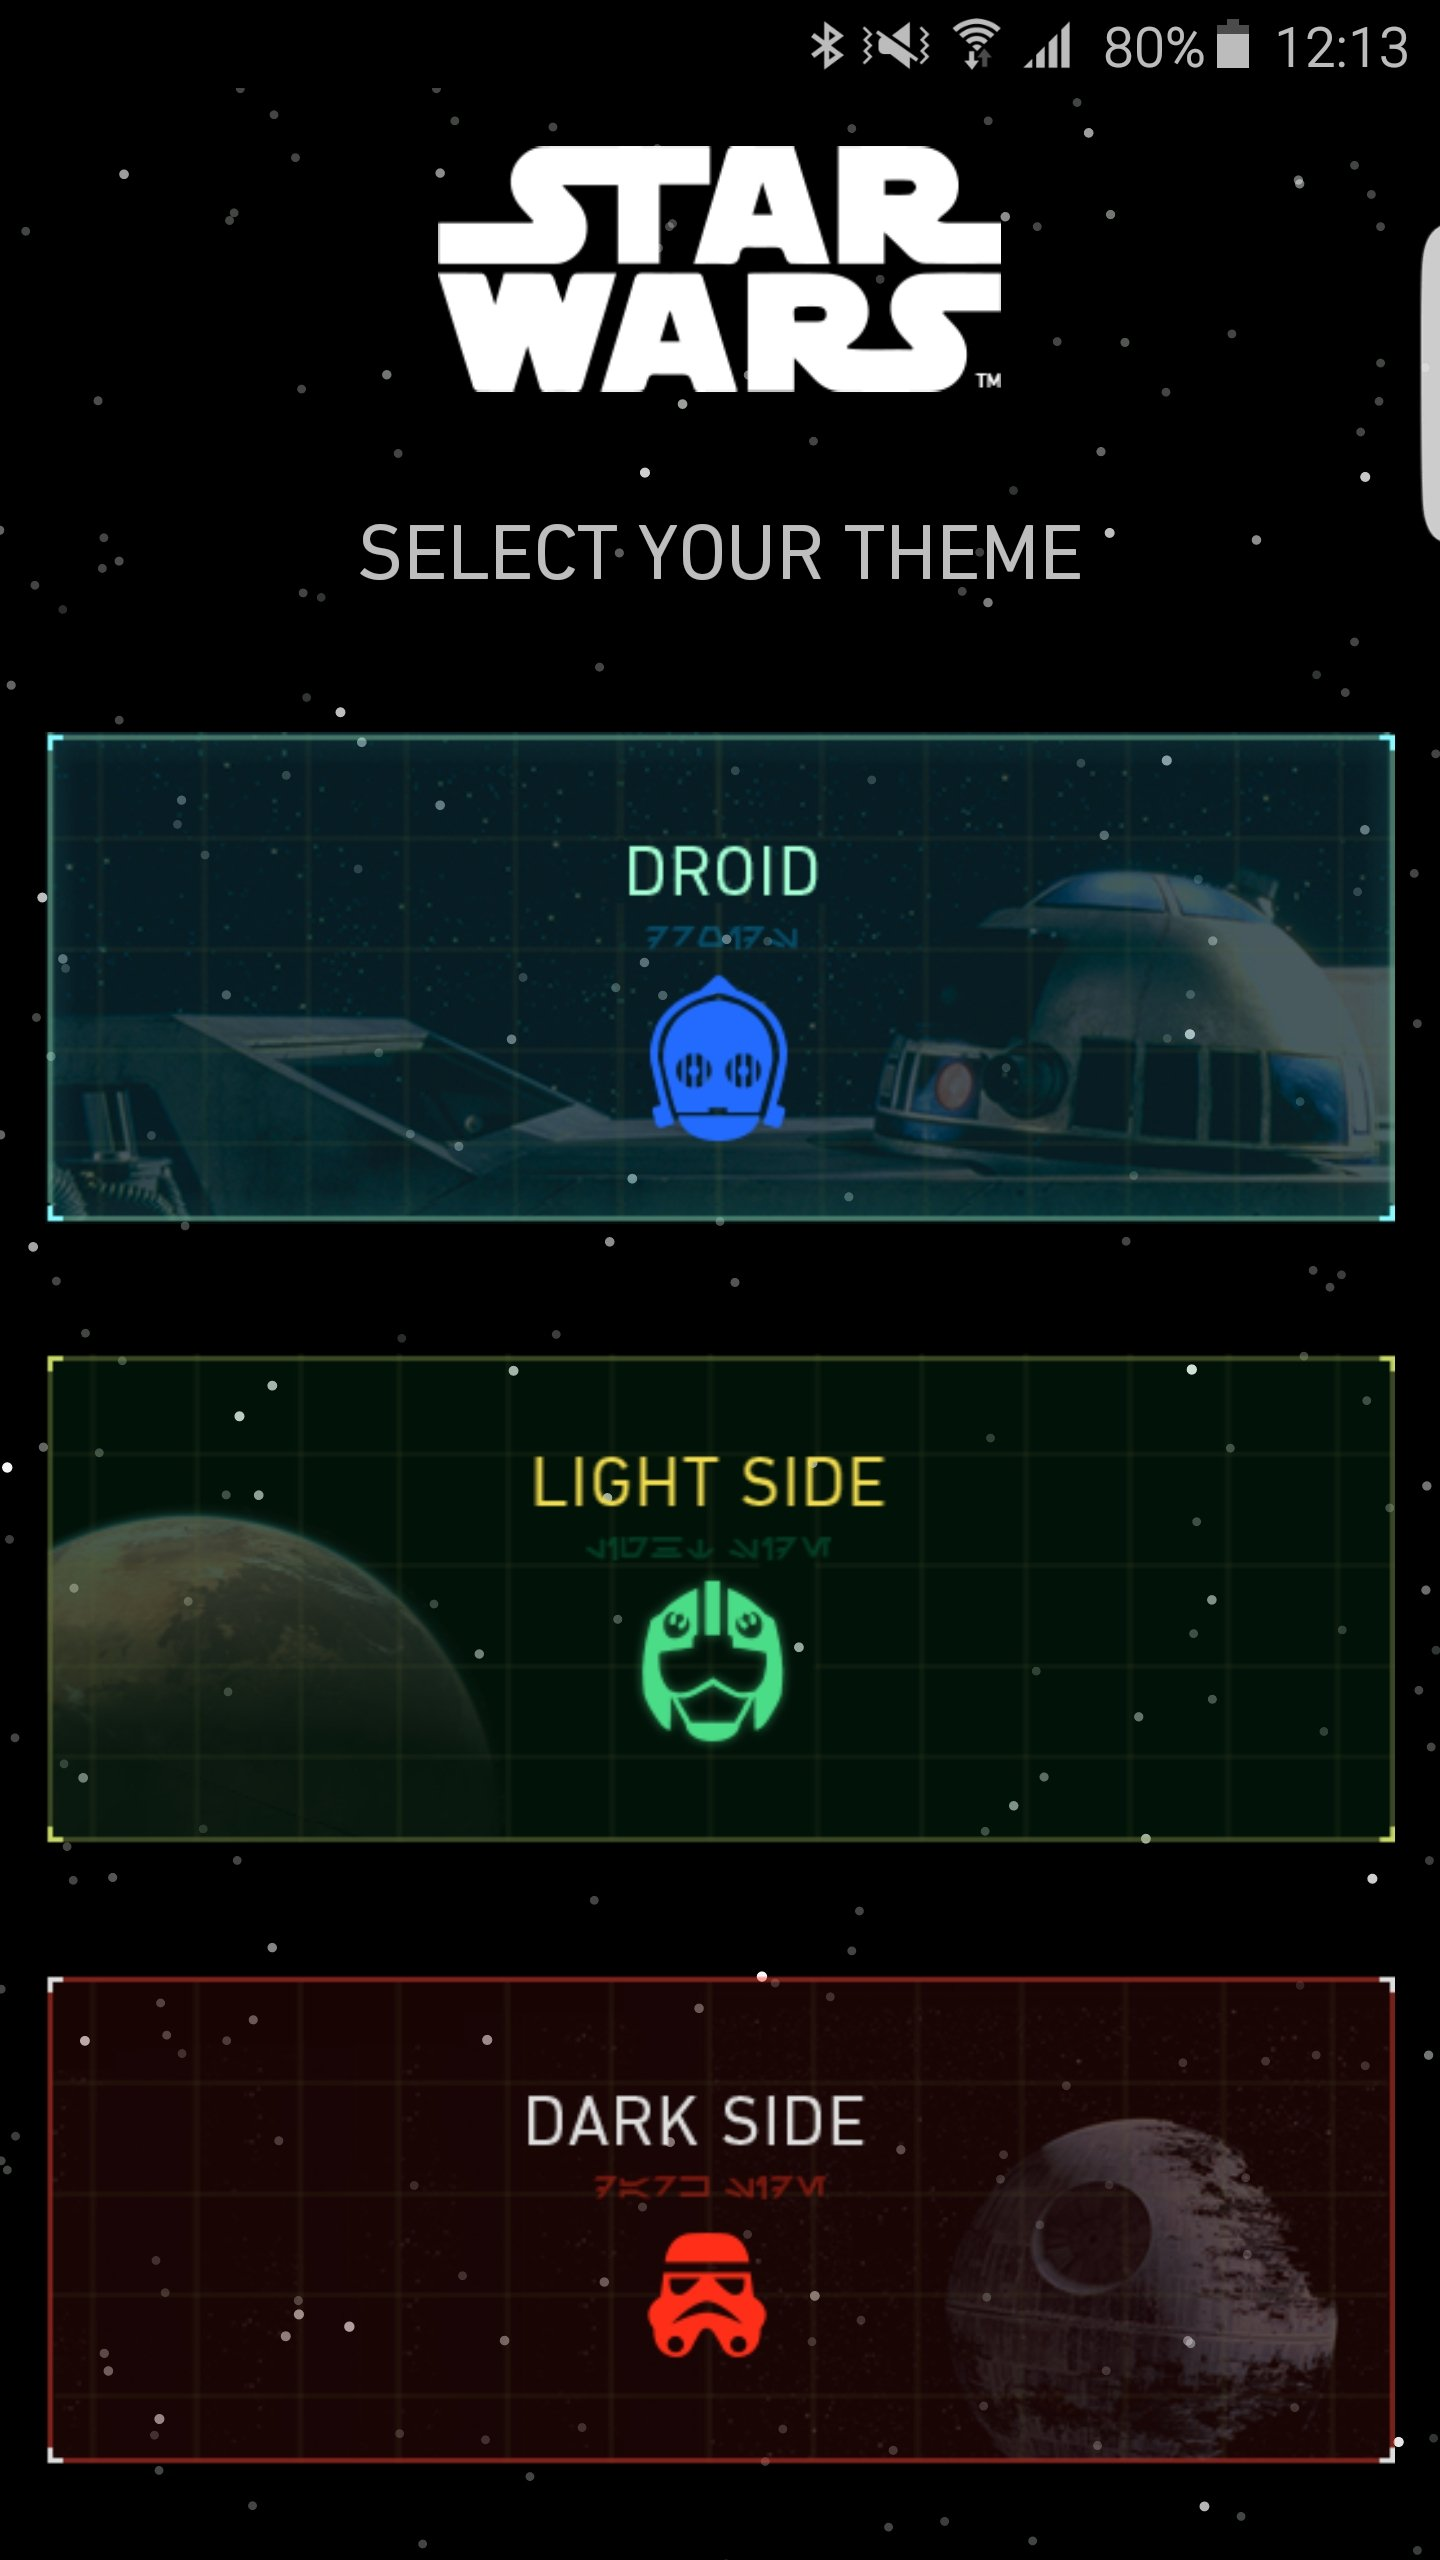 Star Wars Android image 6